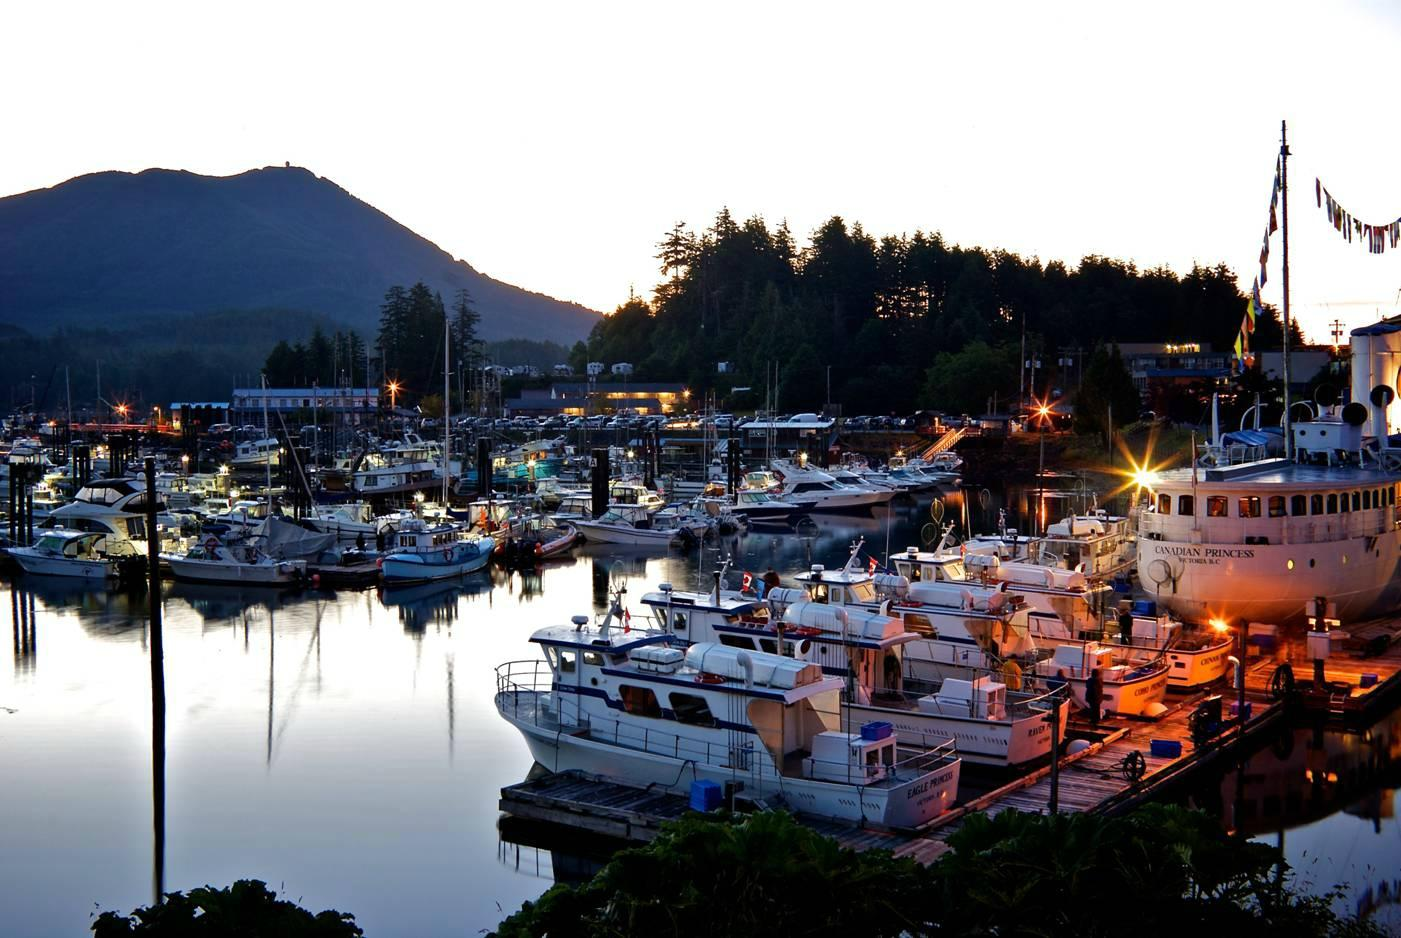 Canadian Princess Fishing Lodge & Marine Adventures